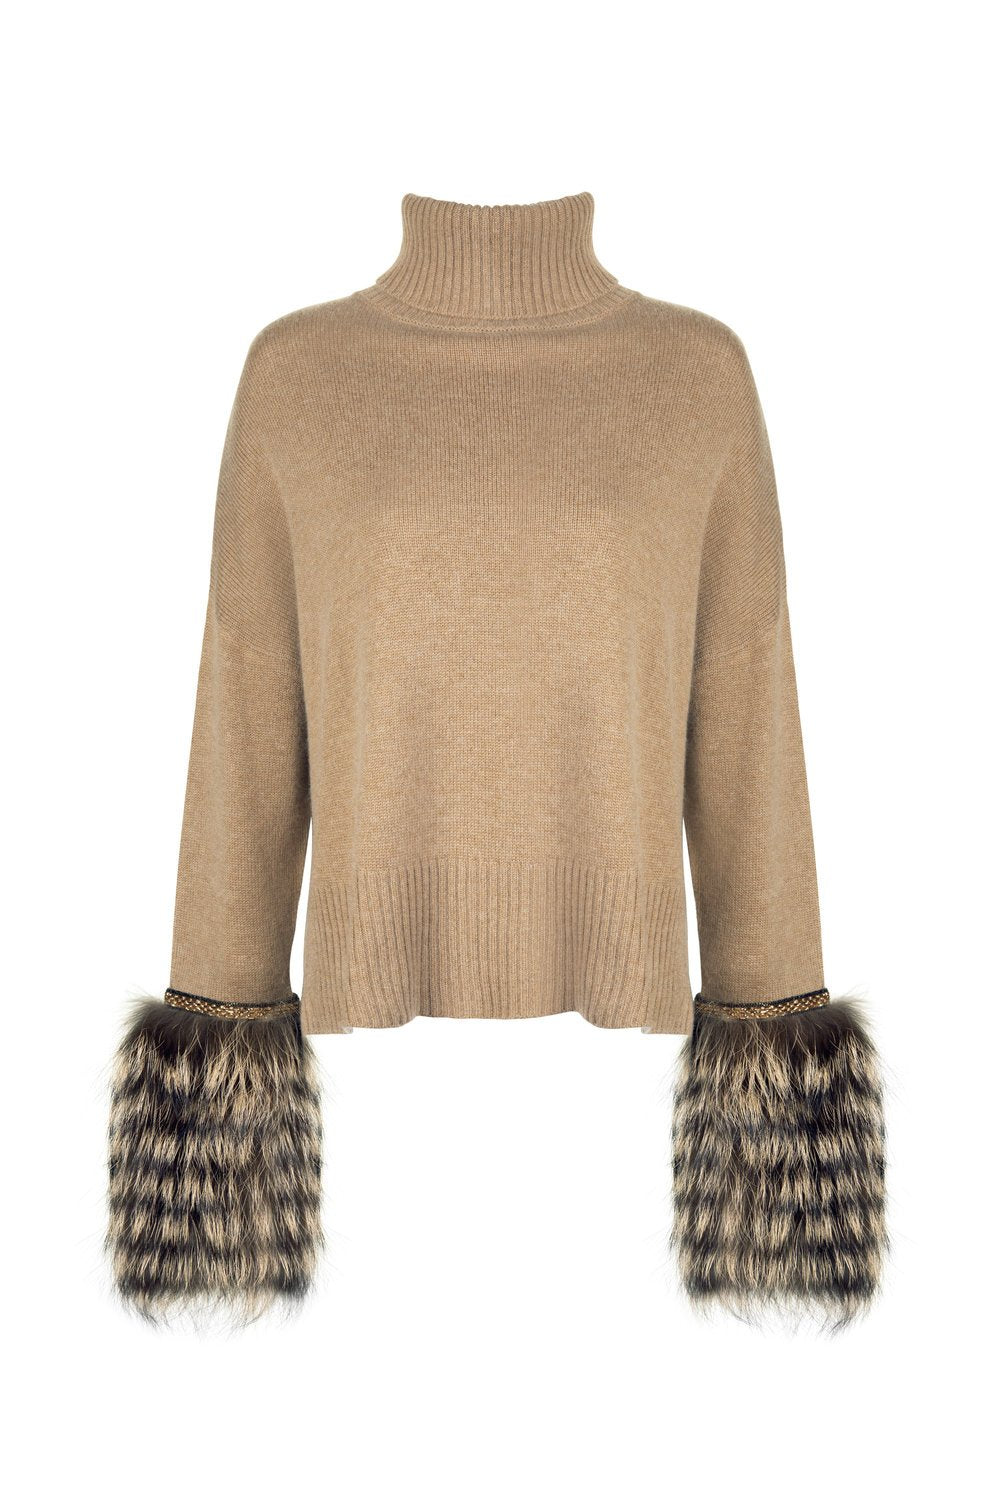 Caramel Embellished Cuff Sweater